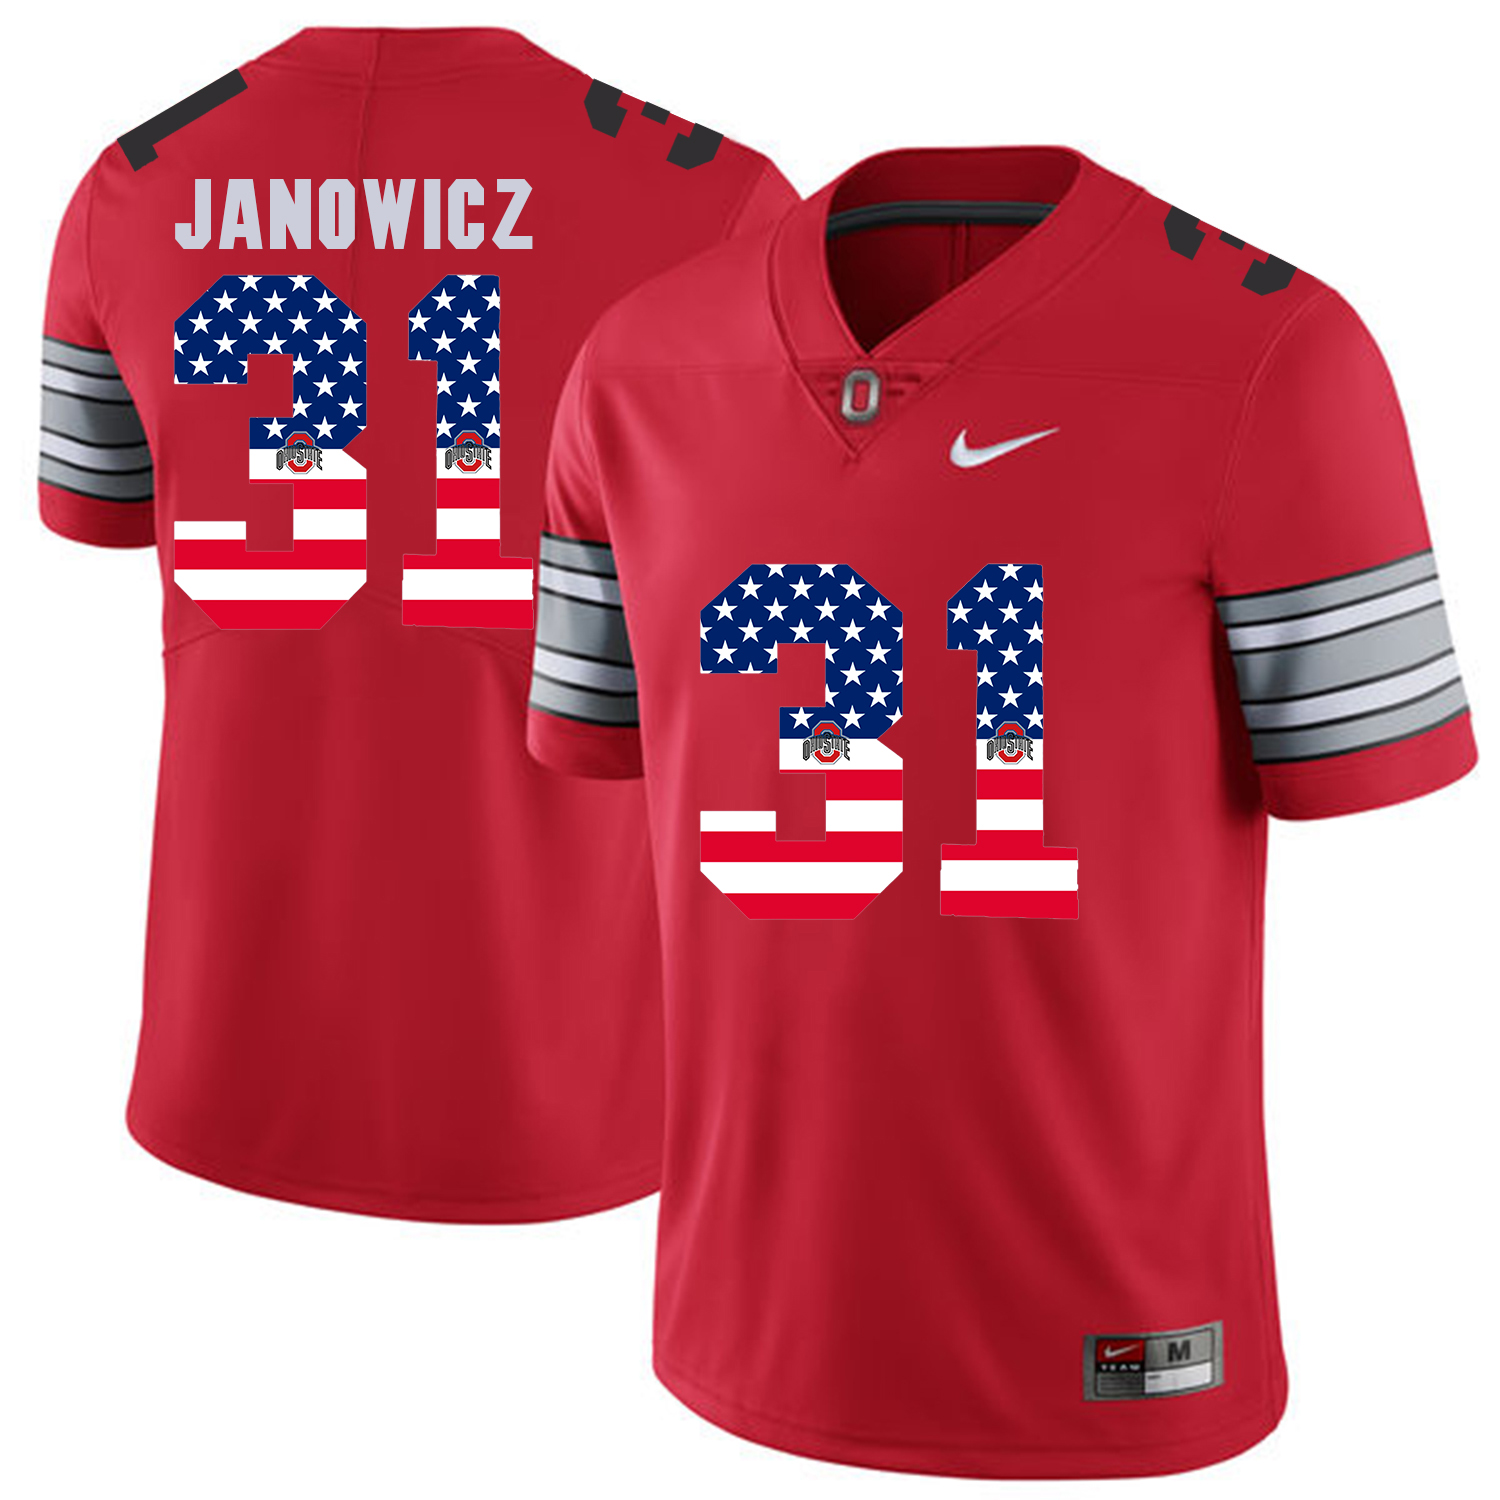 Men Ohio State 31 Janowicz Red Flag Customized NCAA Jerseys